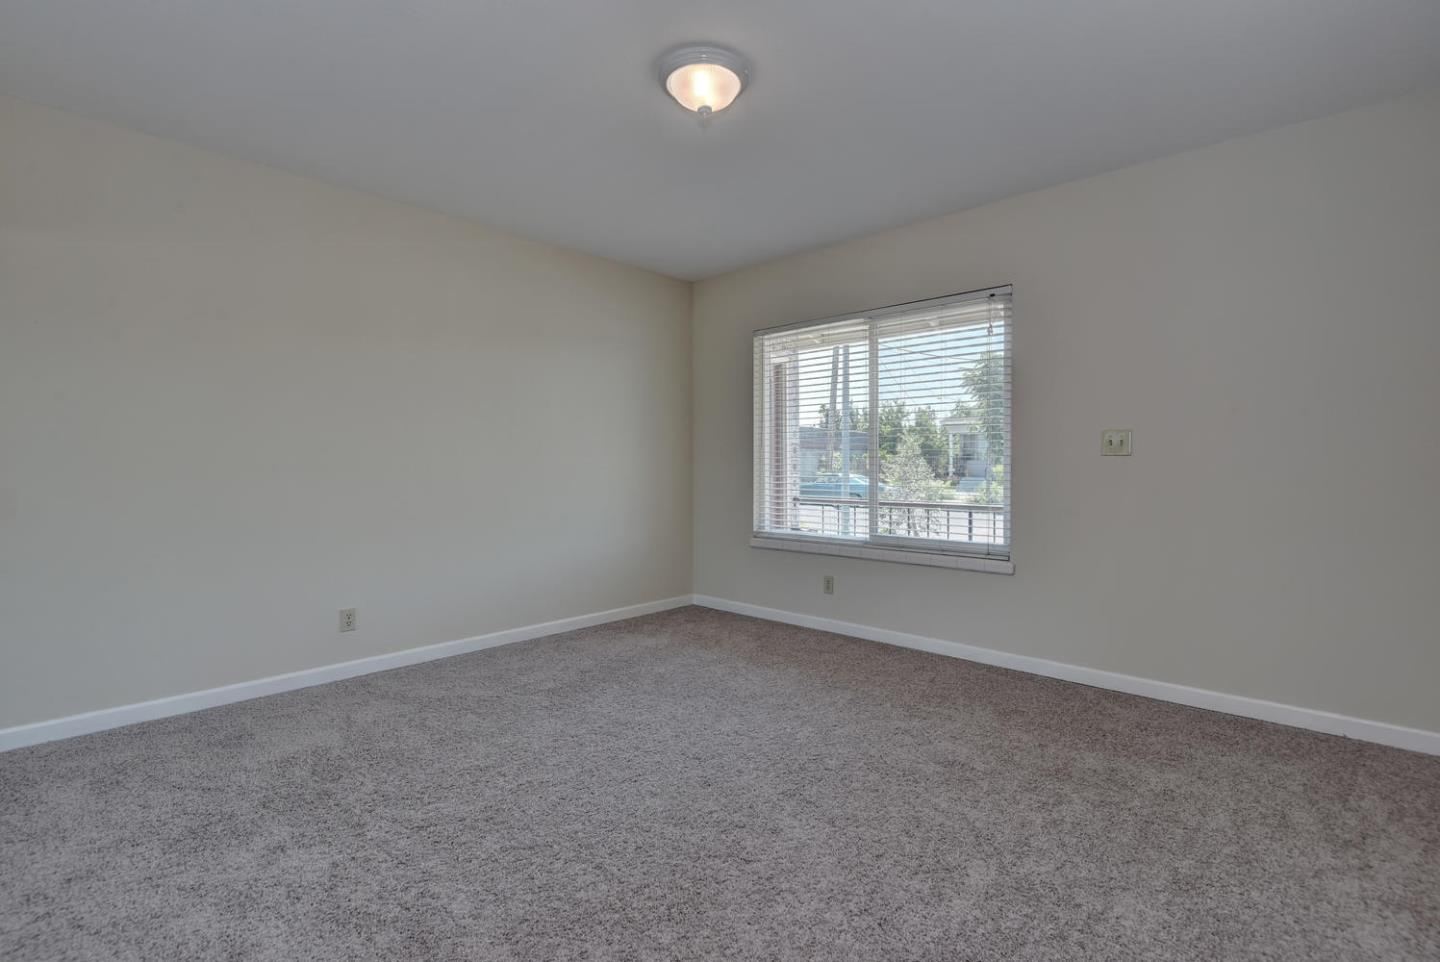 Additional photo for property listing at 1459 E San Fernando Street  San Jose, カリフォルニア 95116 アメリカ合衆国